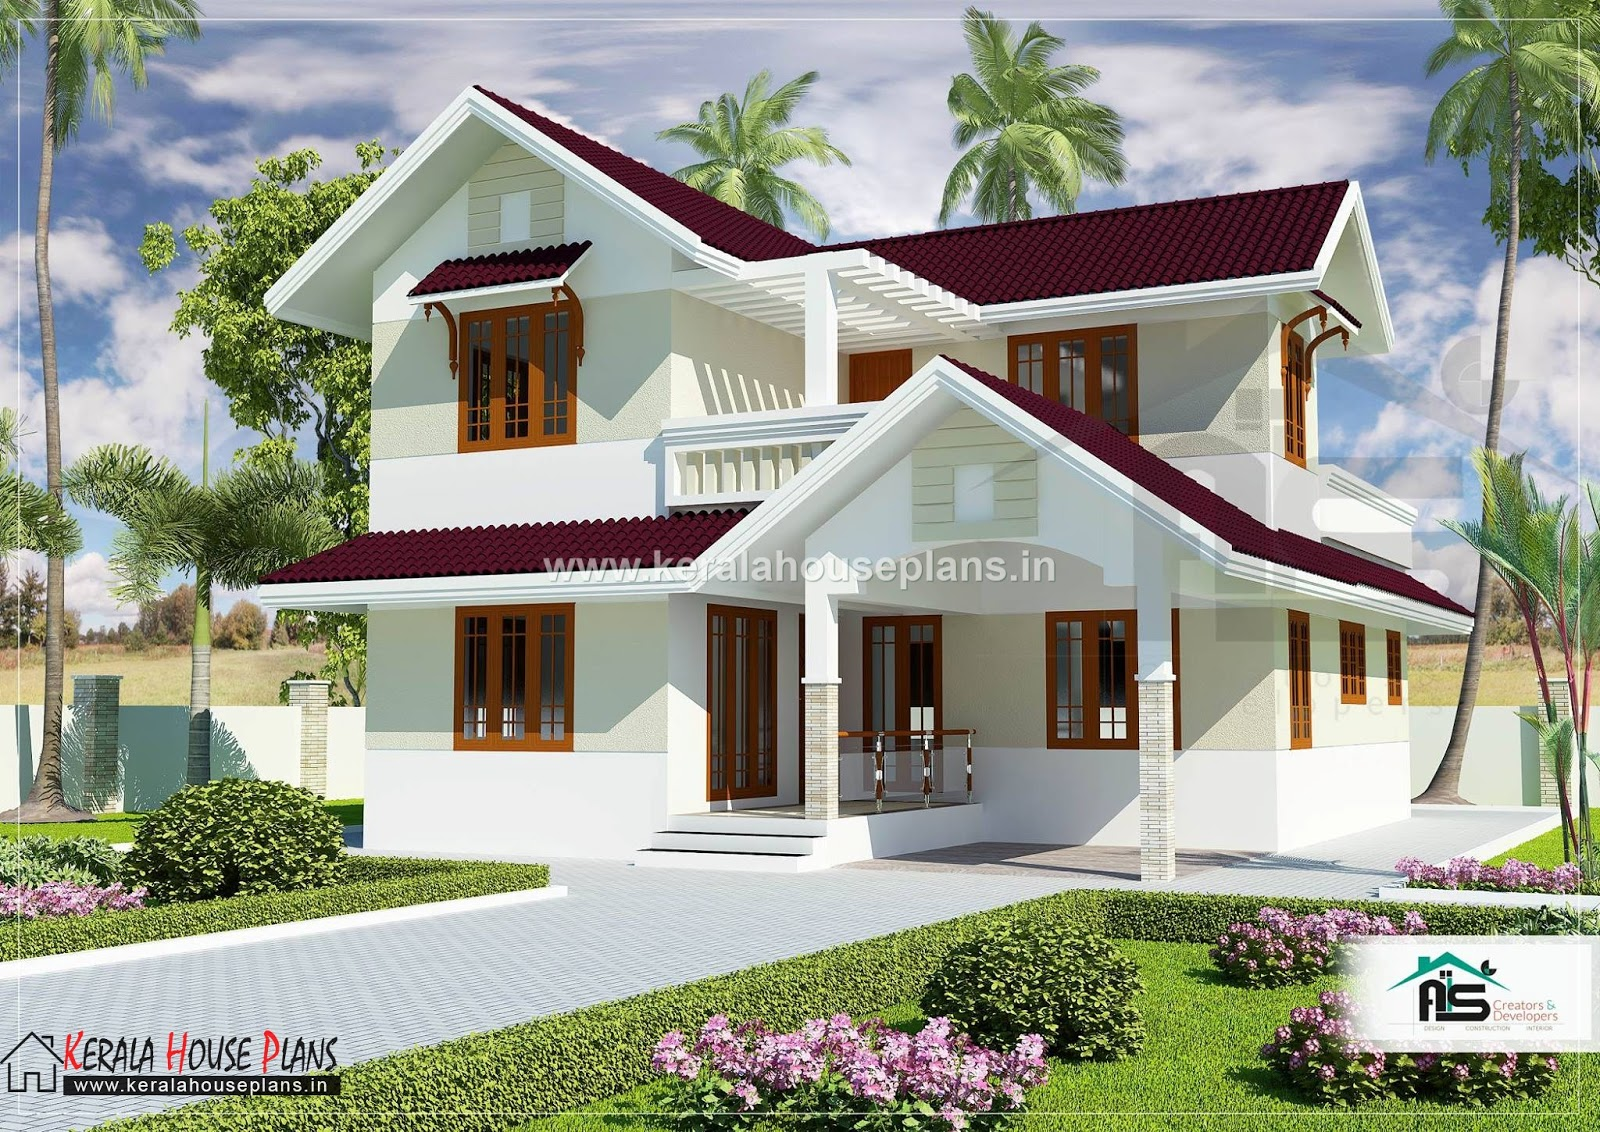 Kerala model house plans with elevation 1829 sqft kerala for The model house